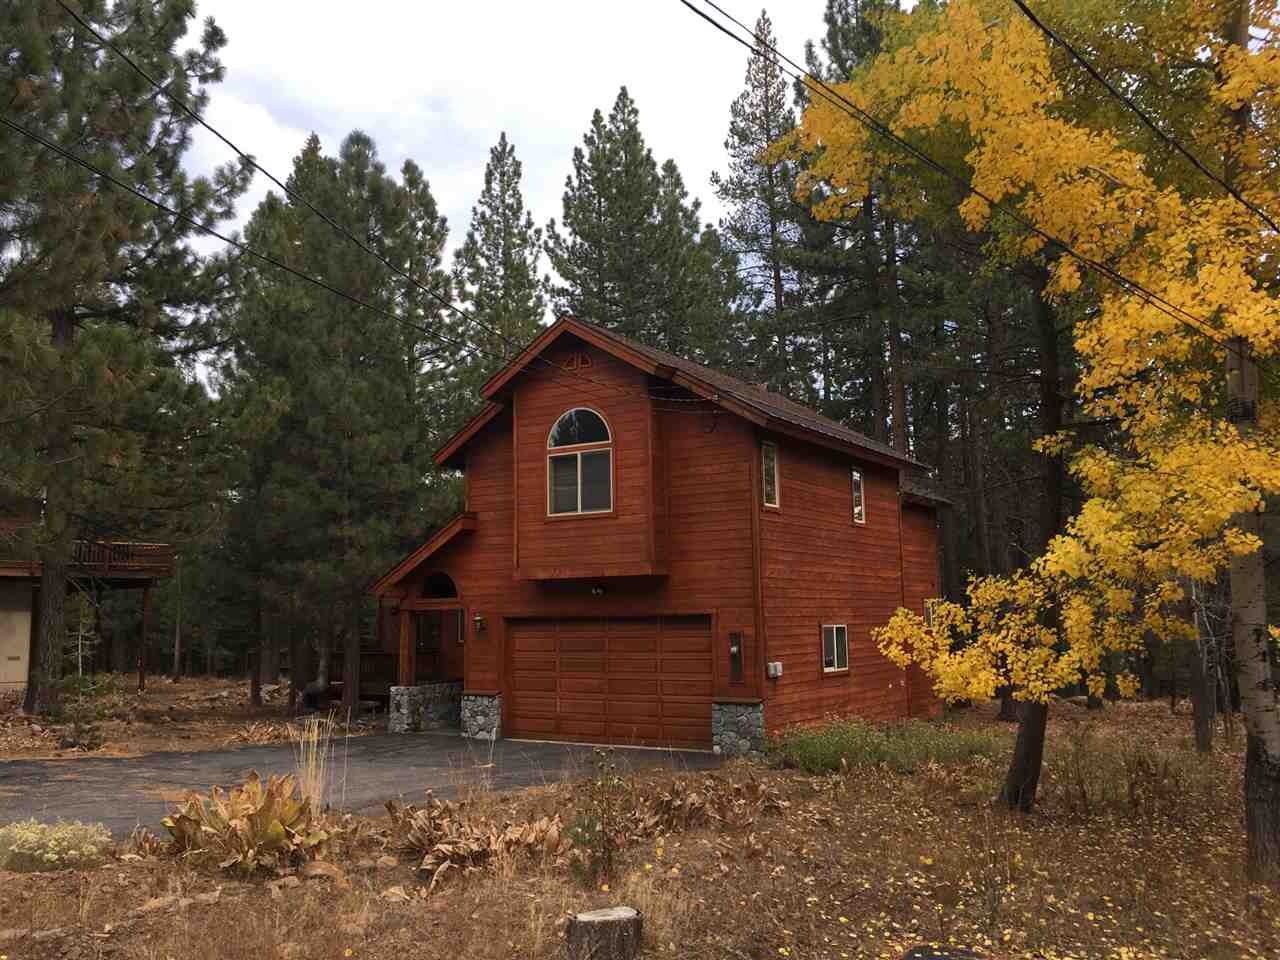 Single Family Home for Active at 14749 Tyrol Road 14749 Tyrol Road Truckee, California 96161 United States